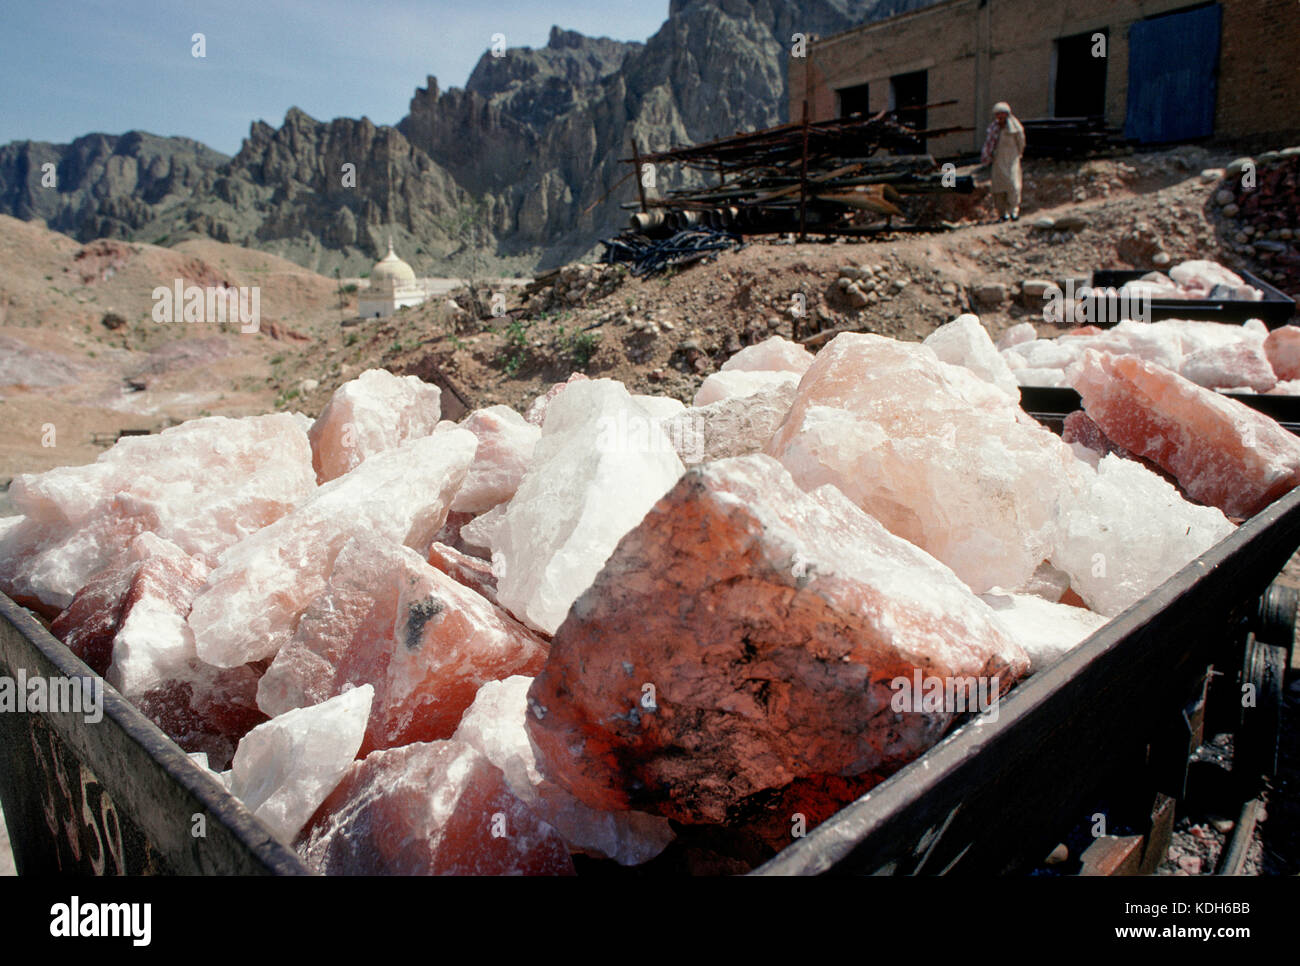 Lumps of rock salt as they come out of the salt mines, near Kalabach, Pakistan. - Stock Image